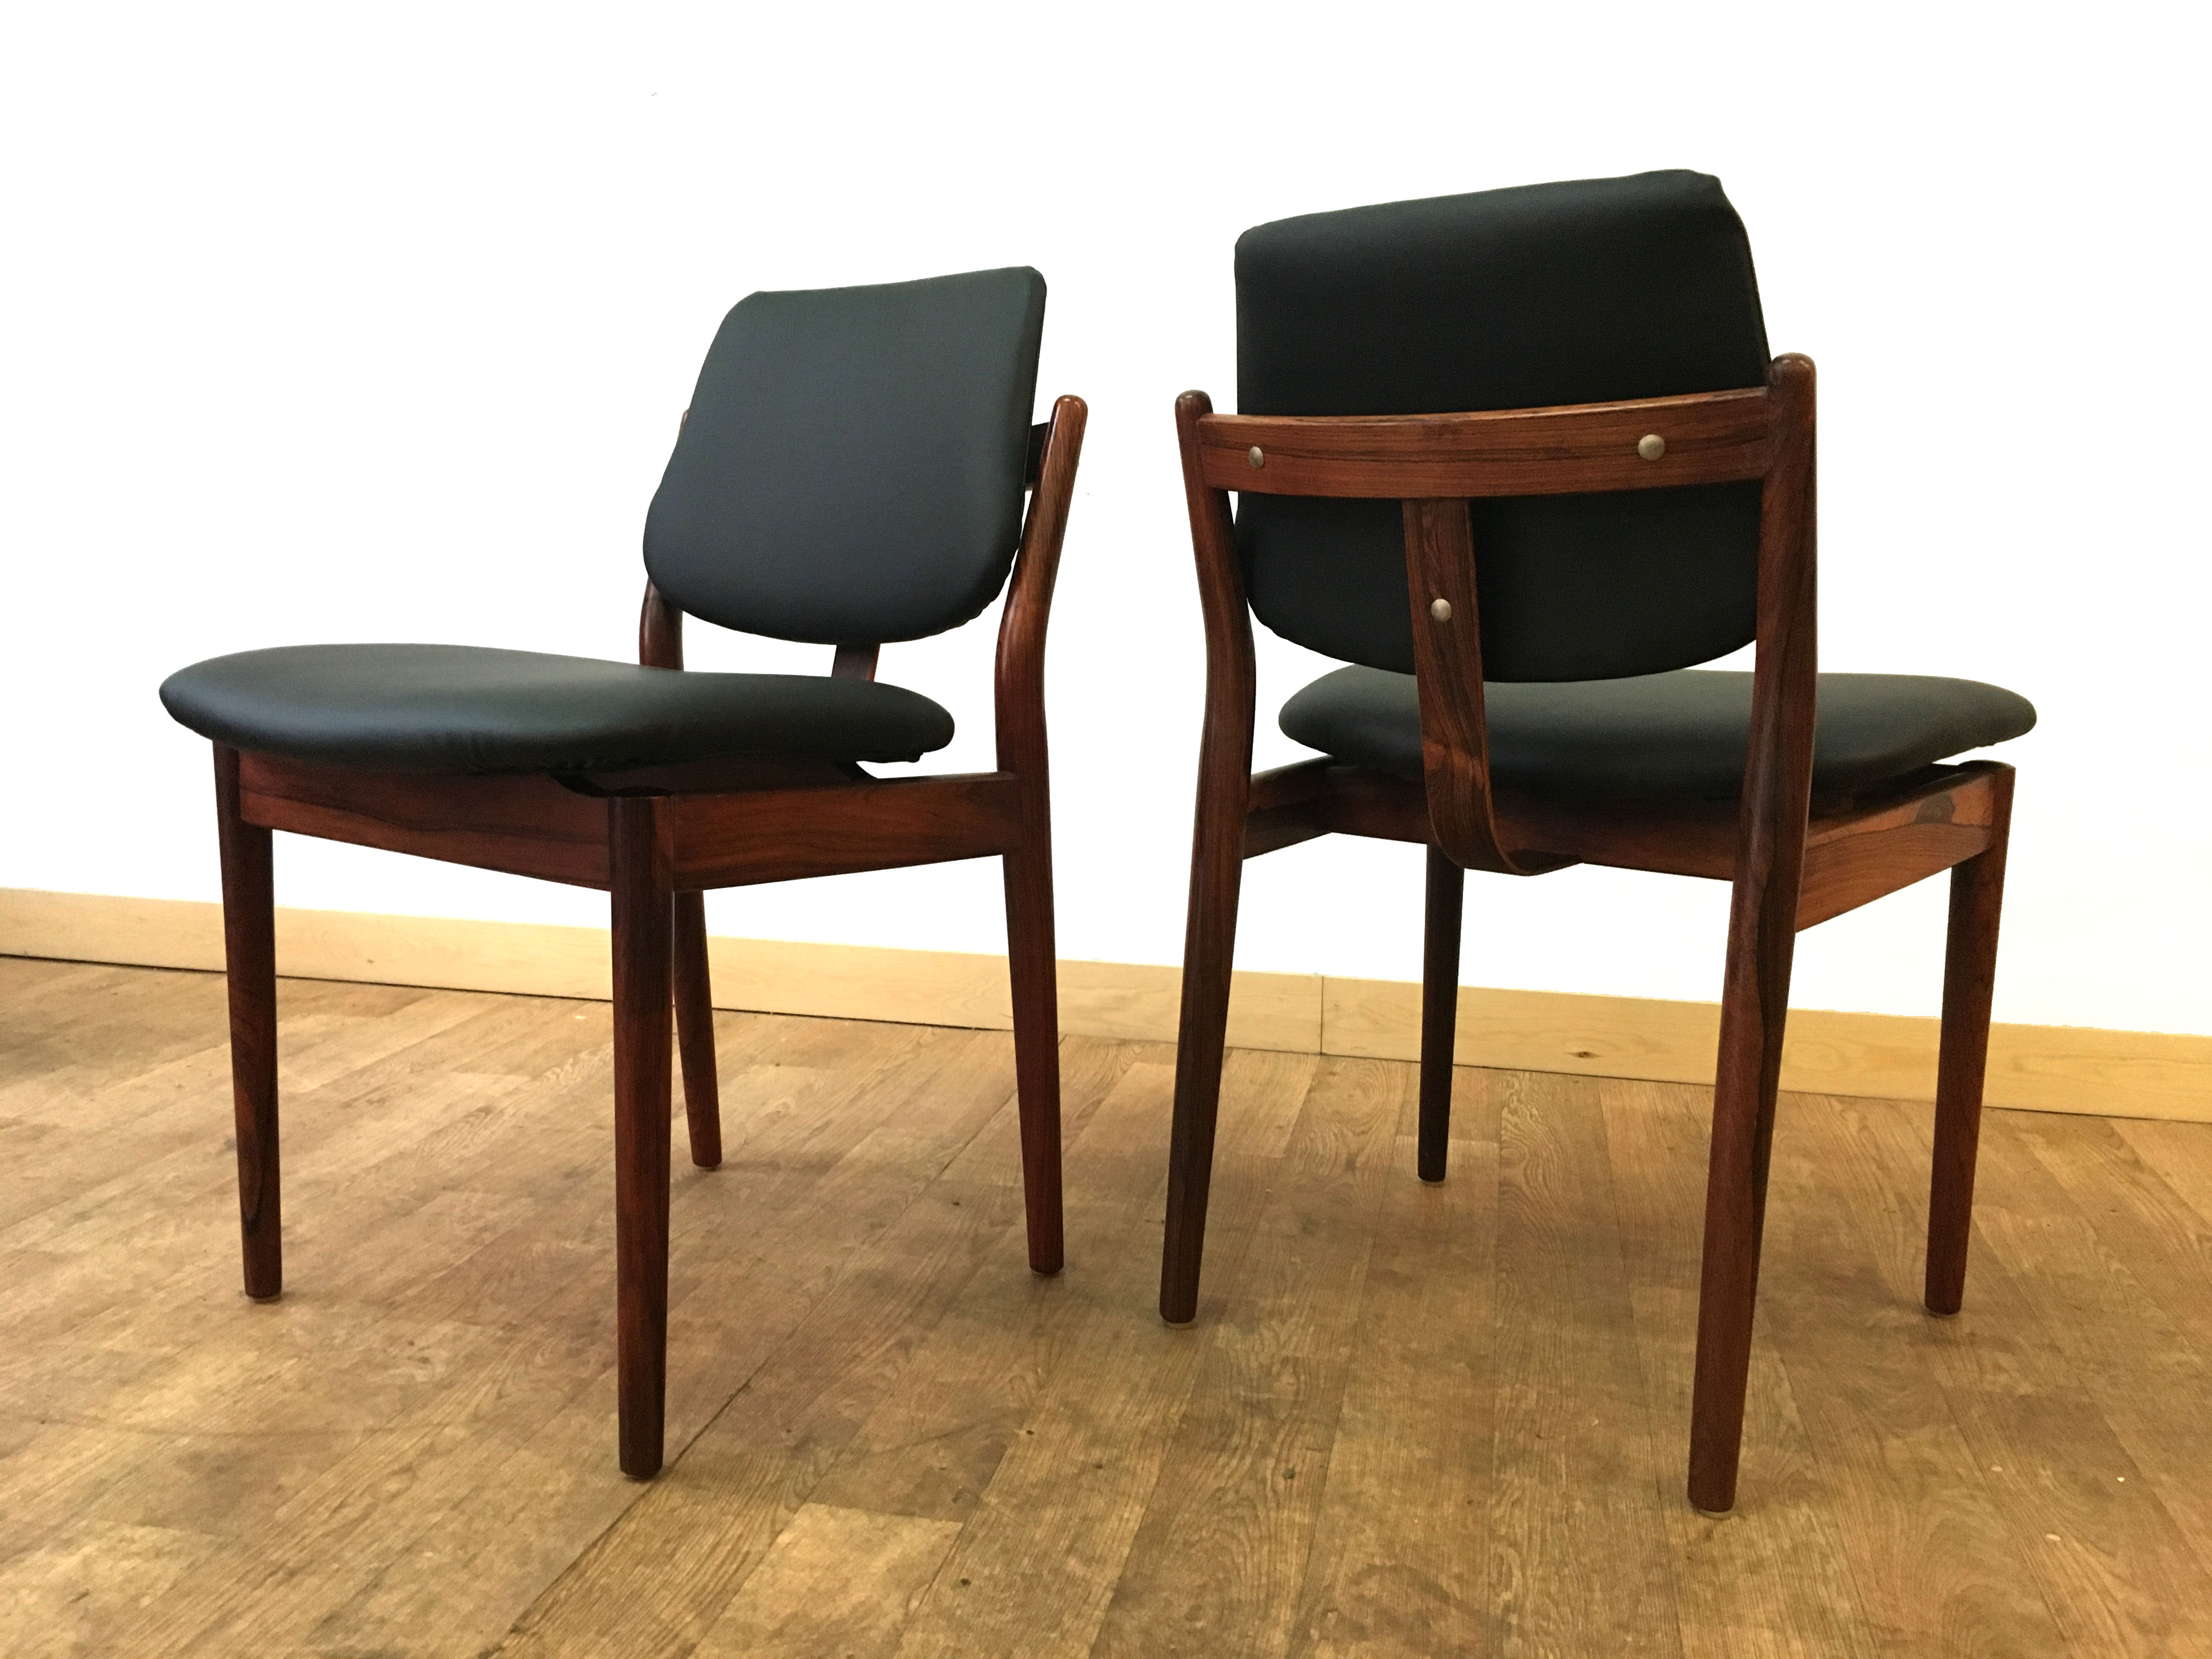 Arne Vodder Rosewood Dining Chairs